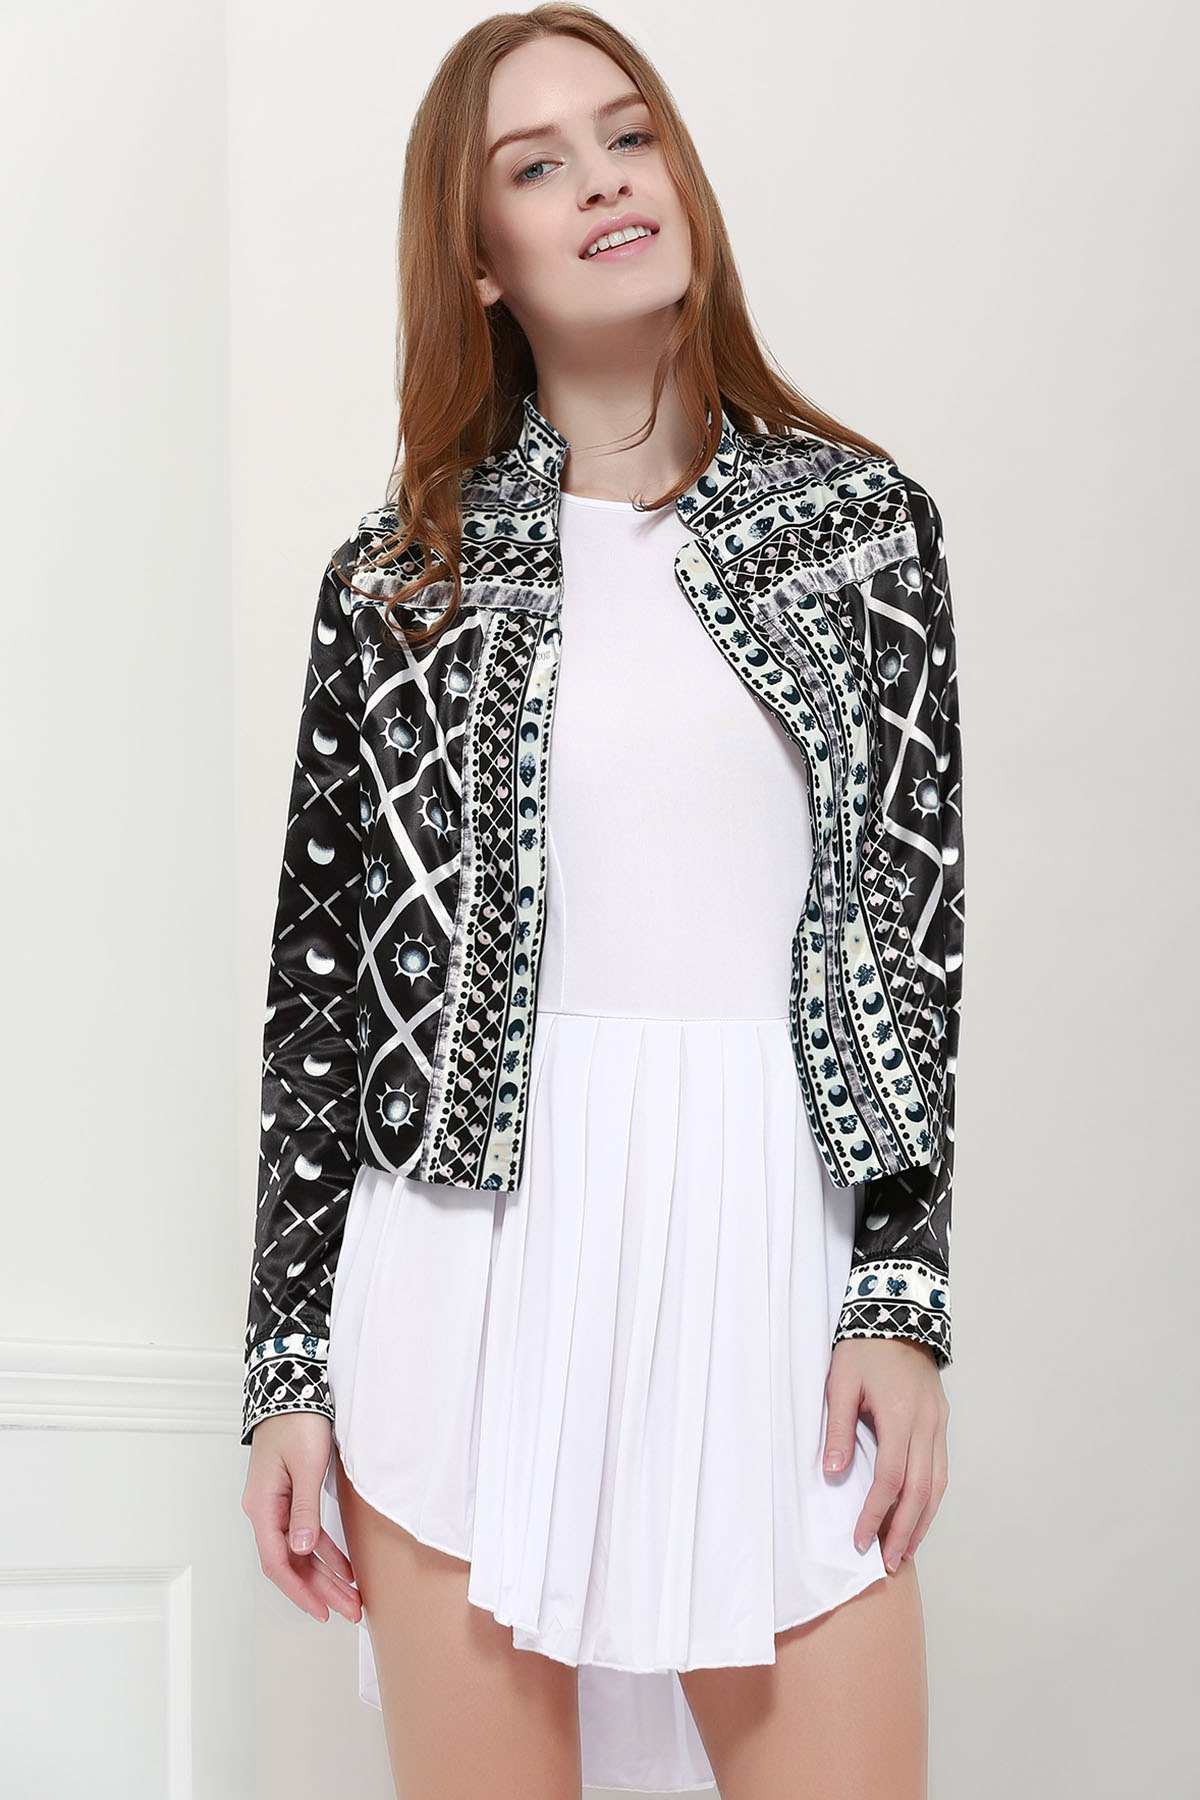 Fashionable Women's Stand Collar Long Sleeves Printed Jacket - BLACK M